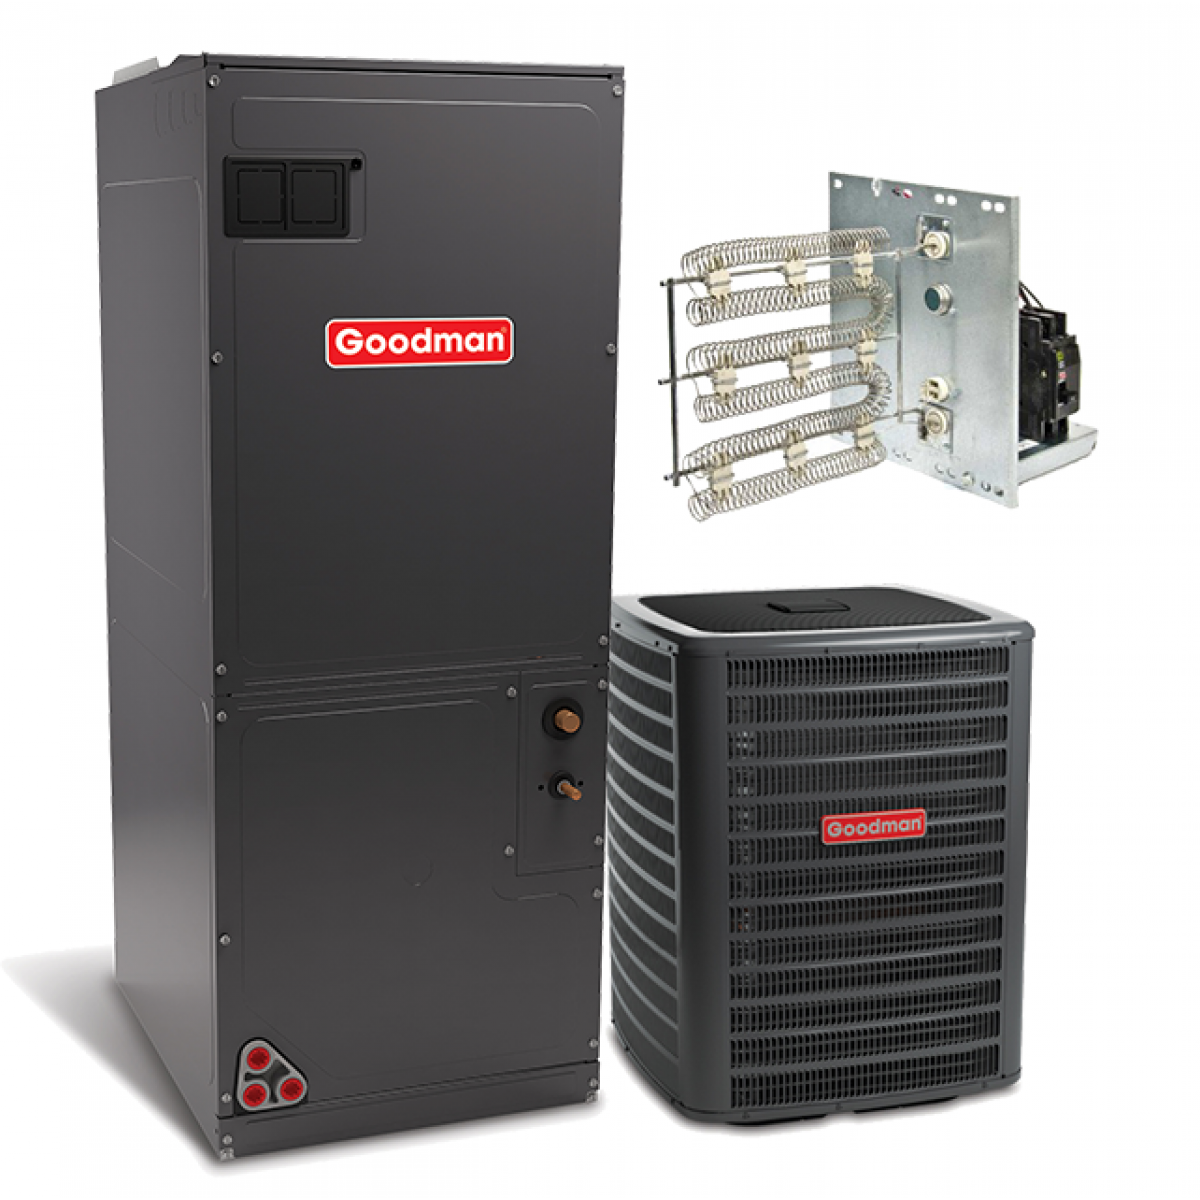 Goodman Commercial heat pump split system